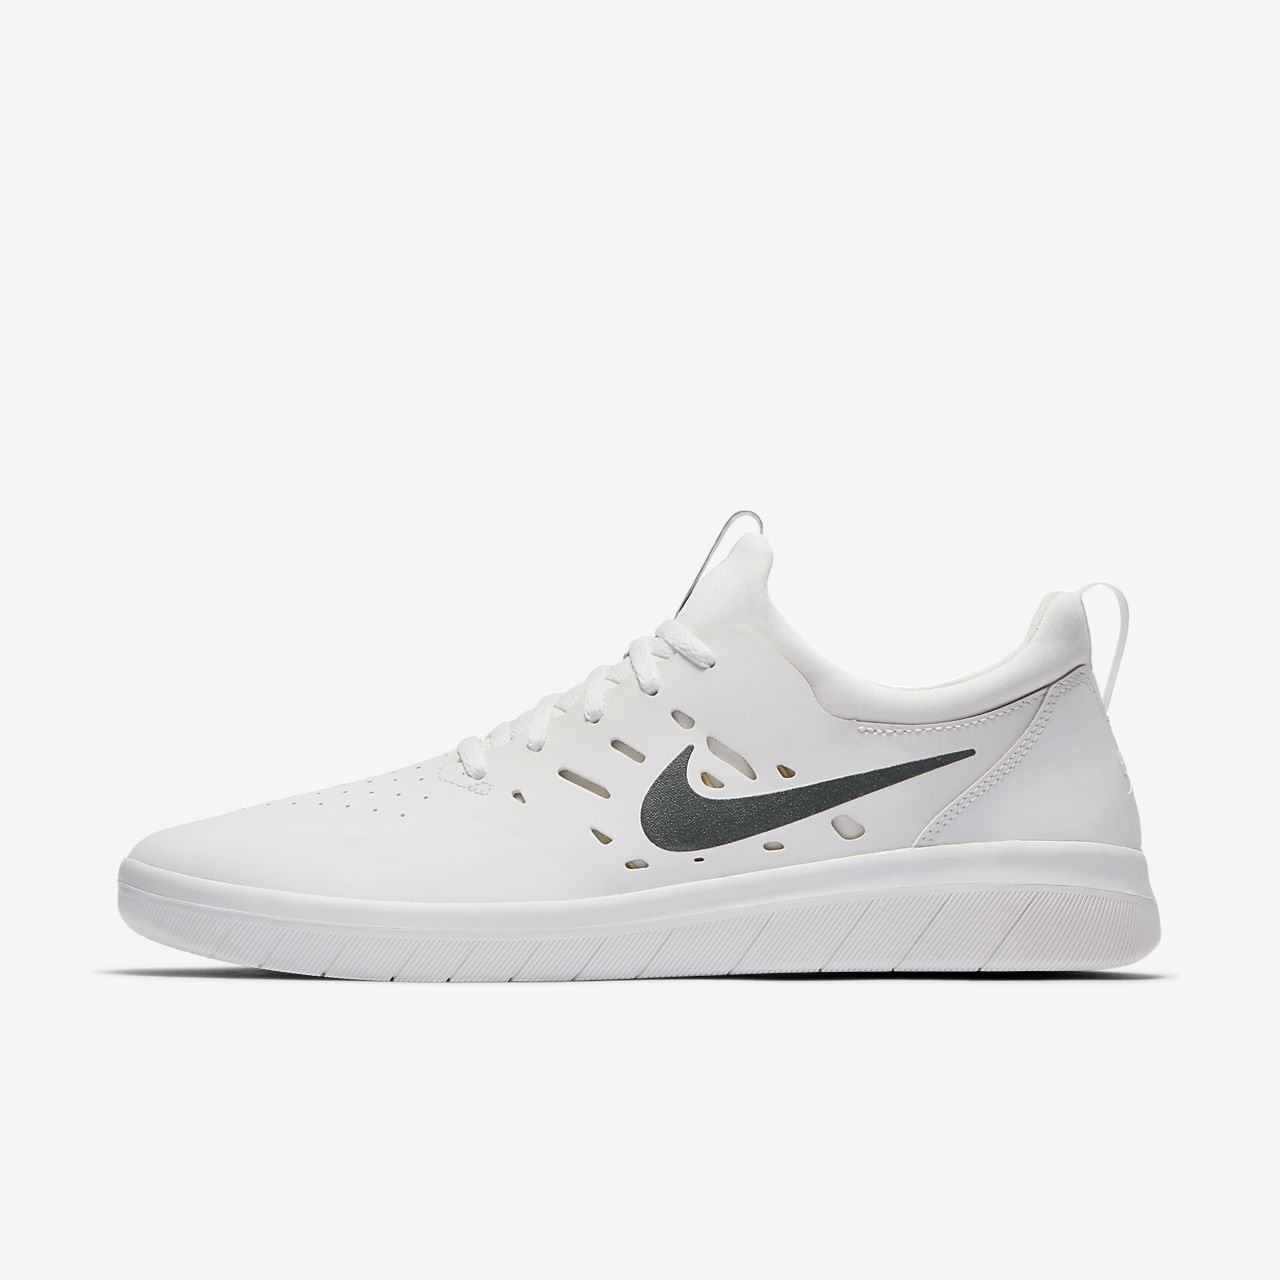 cheap for discount 48721 6dd16 Skate Shoe. Nike SB Nyjah Free